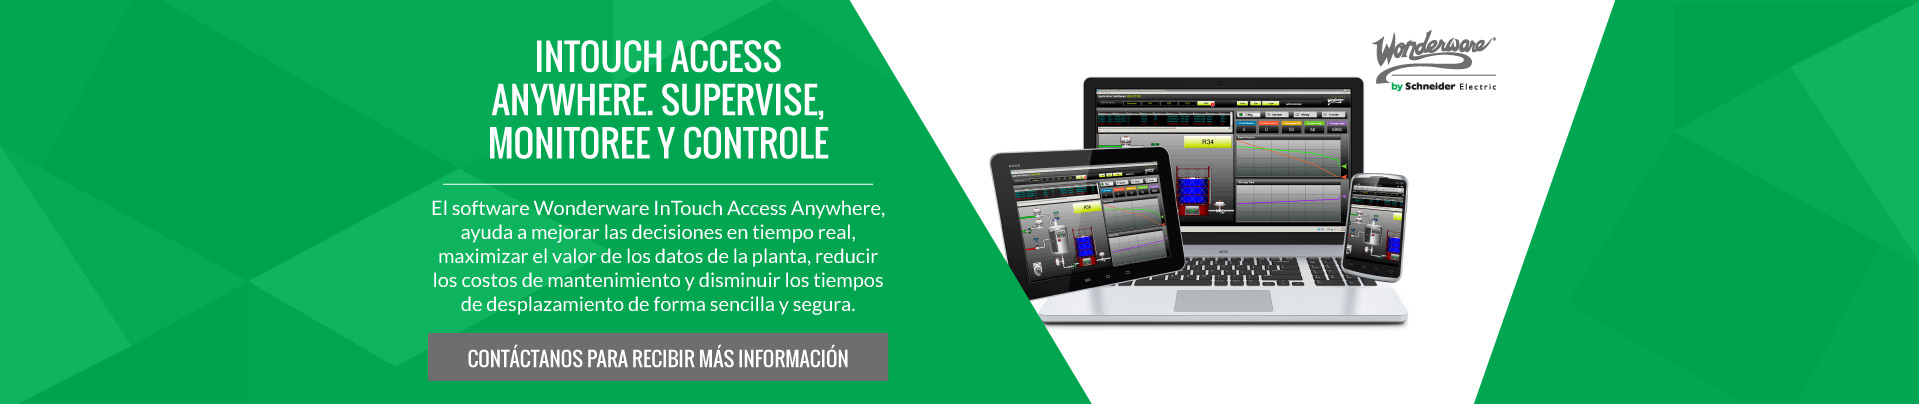 Wonderware, InTouch Access Anywhere